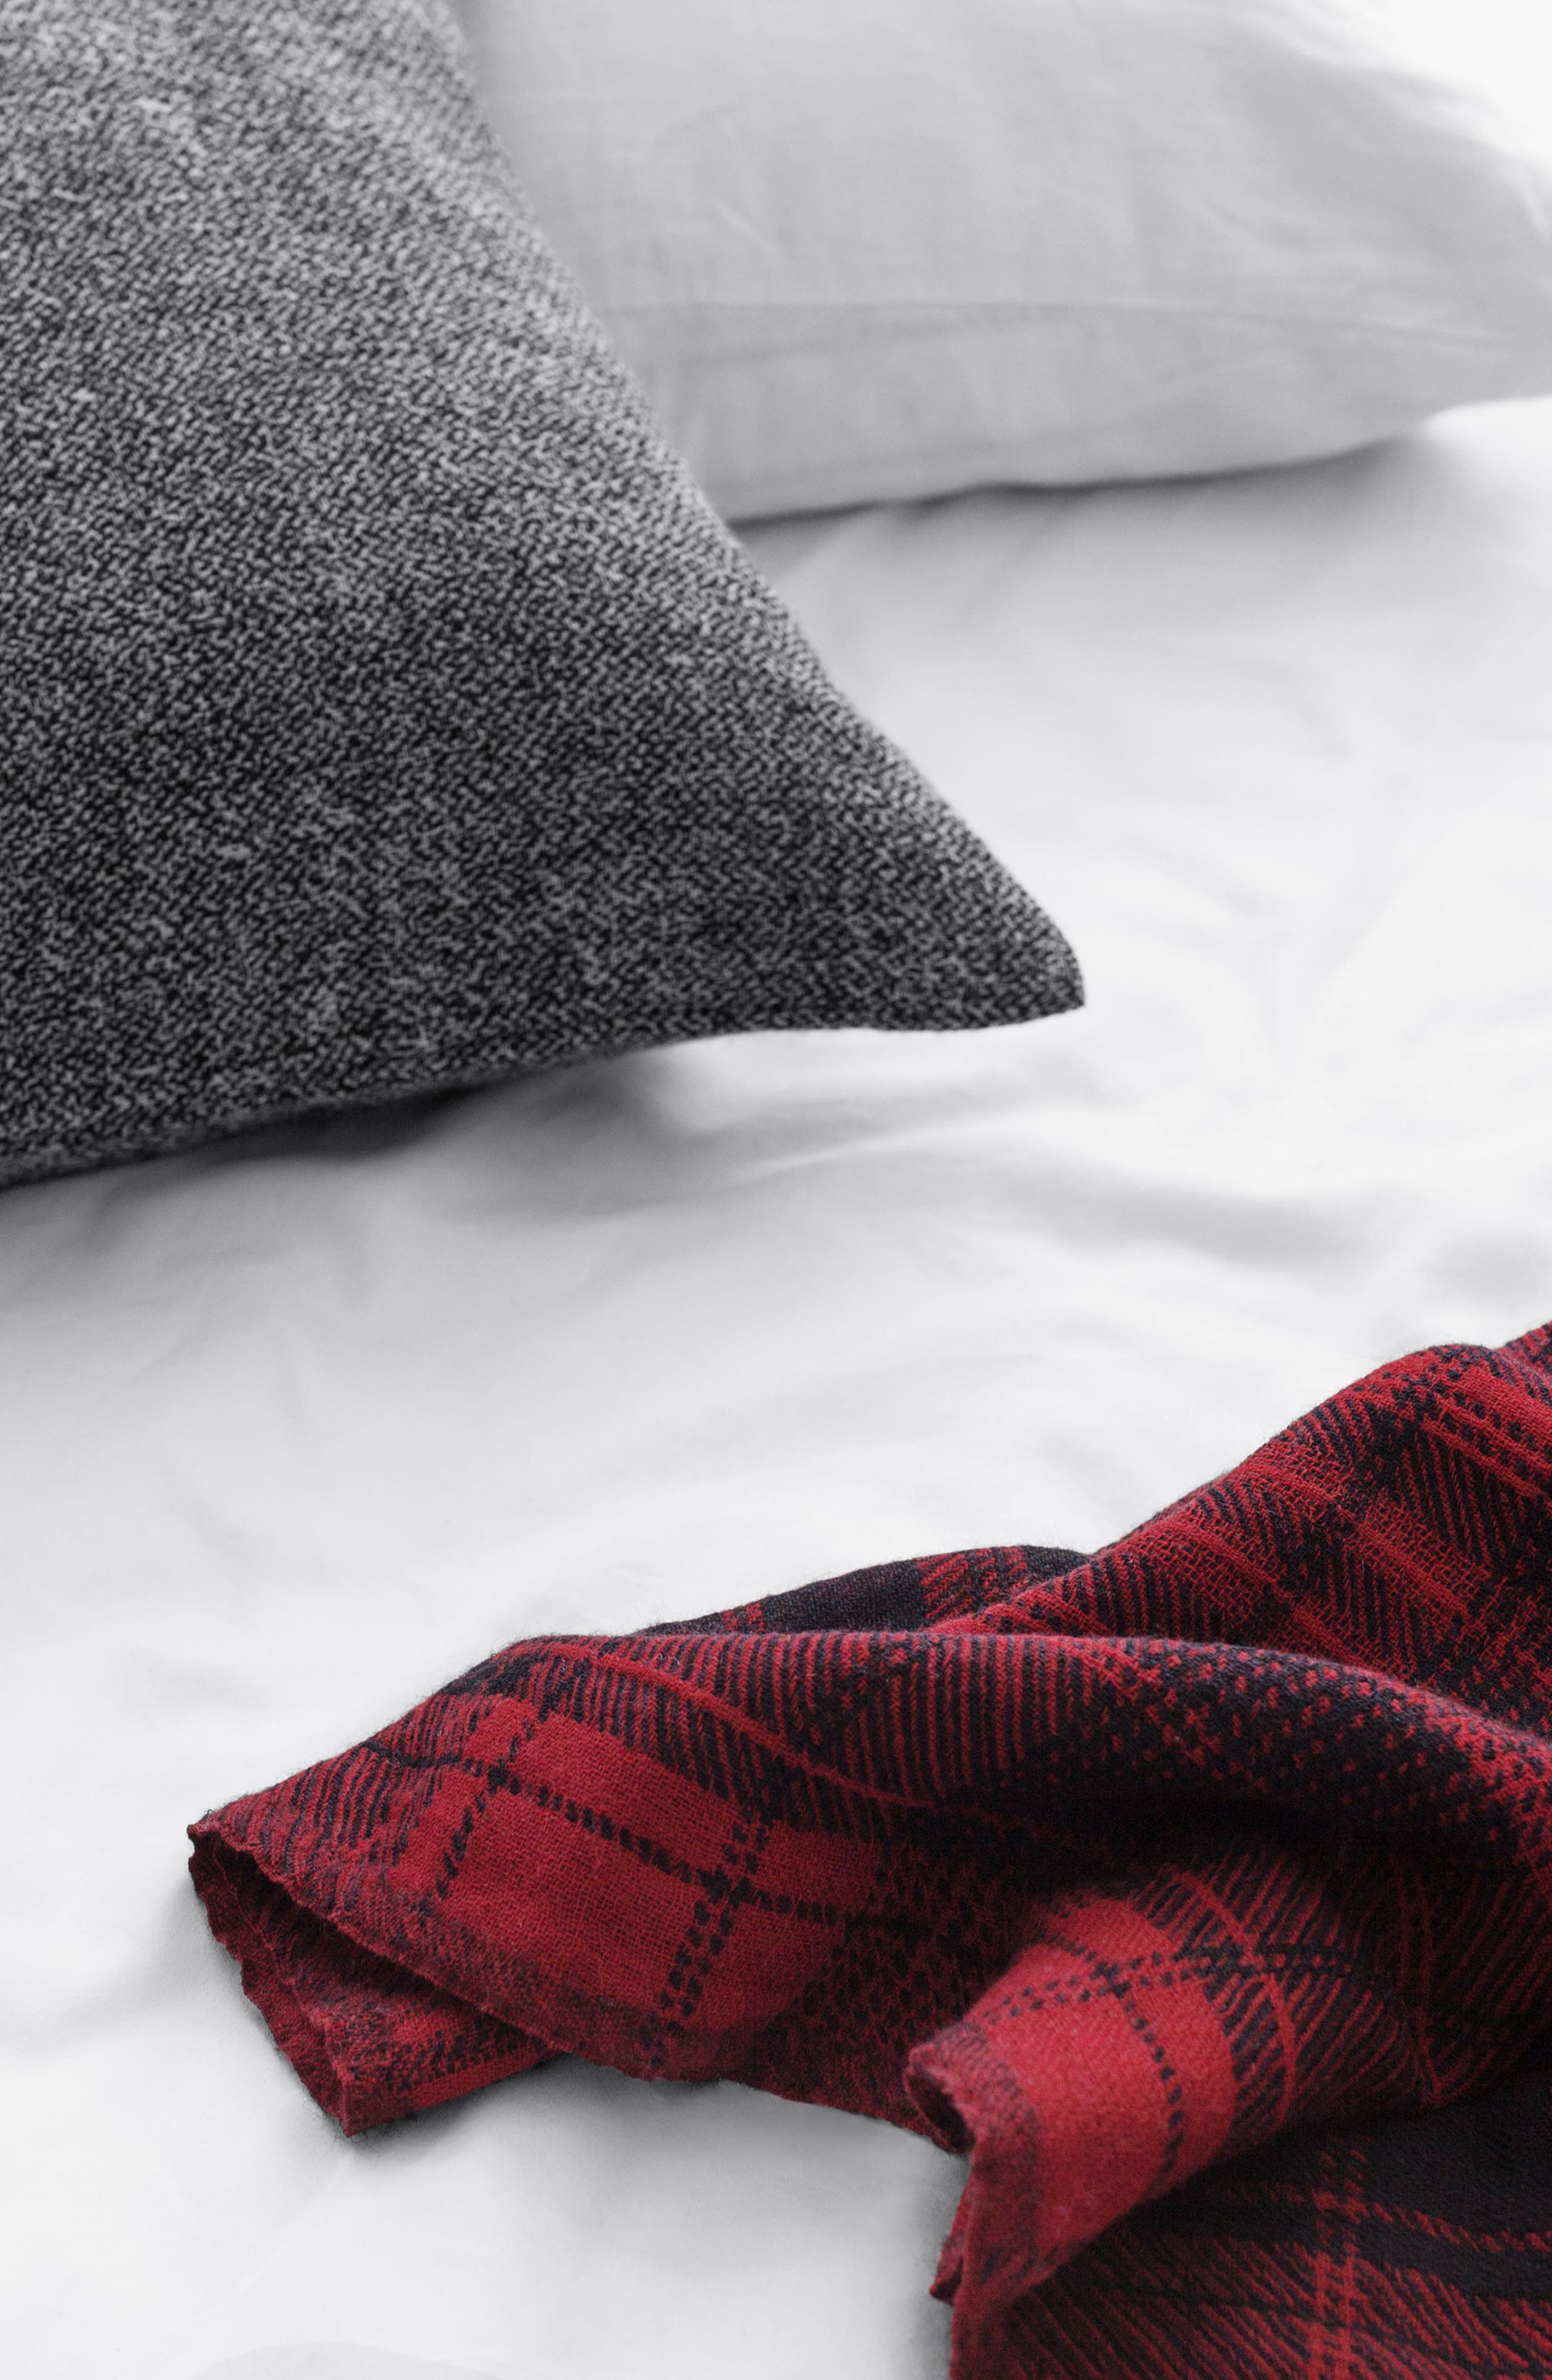 Plaid Double Face Merino Wool Throw,                             Alternate thumbnail 4, color,                             RED BLACK BLANKET PLAID